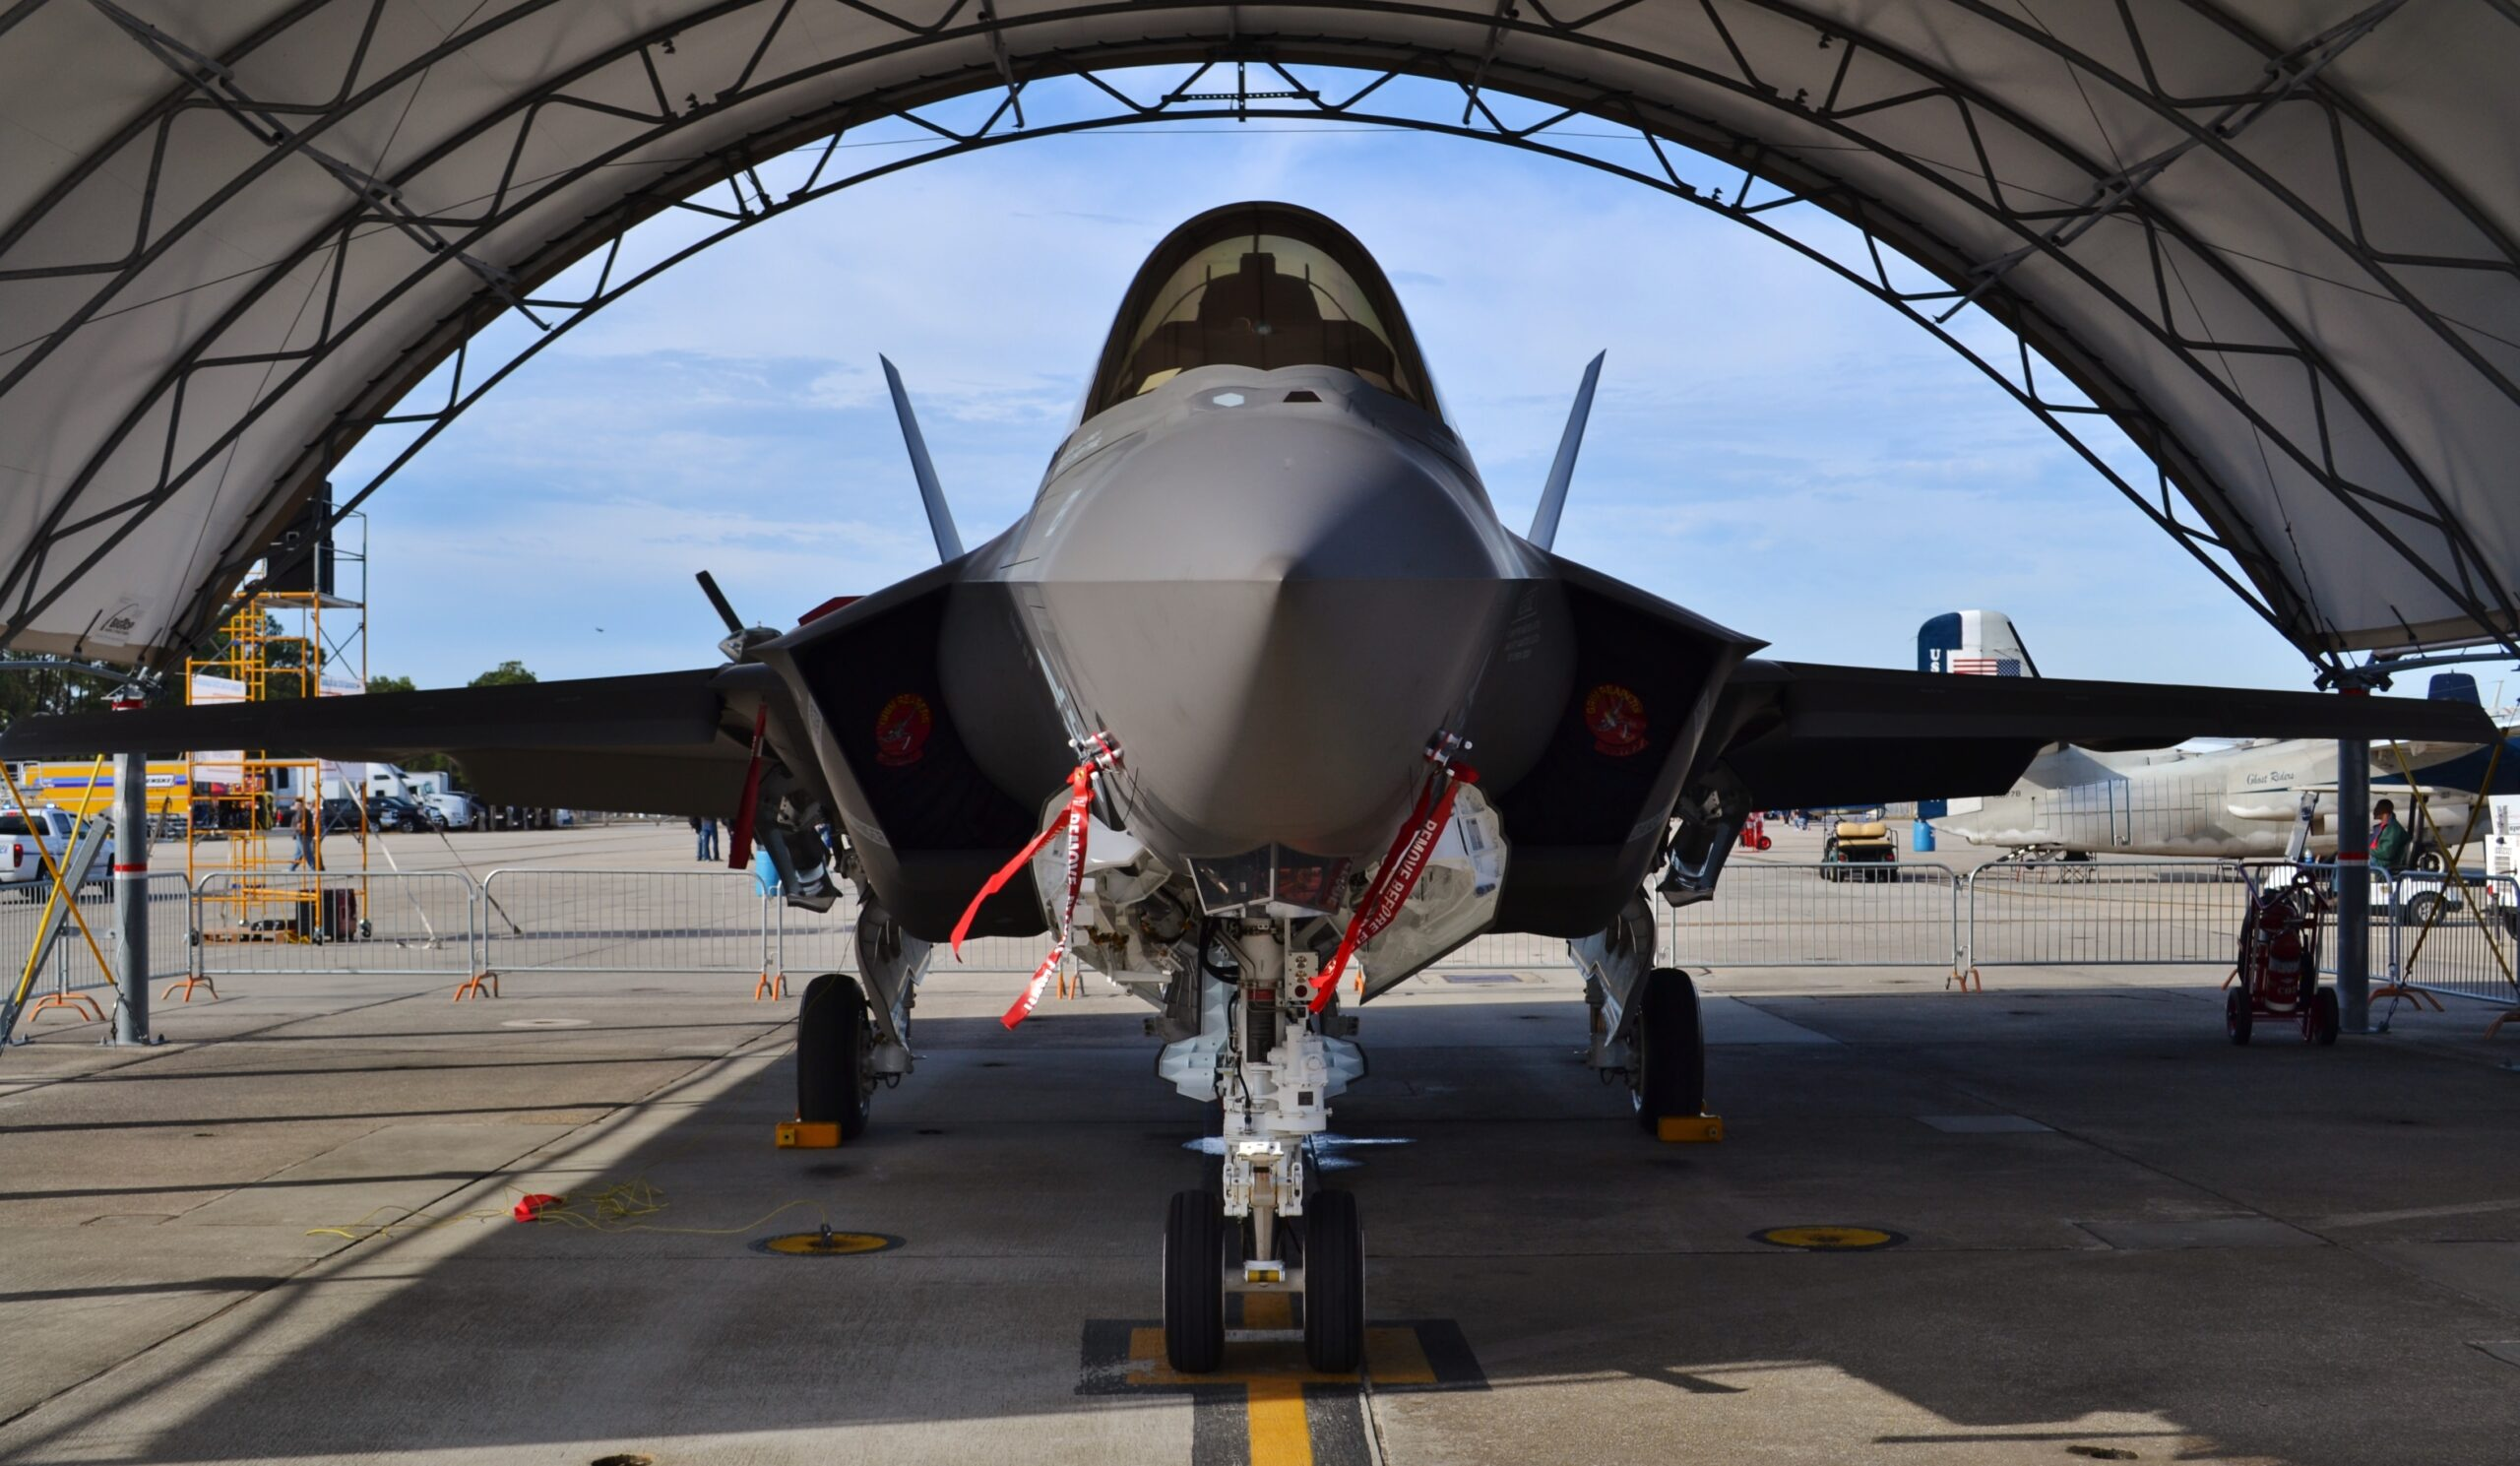 Pensacola, FL, USA - November 11, 2016: A U.S. Air Force F-35 Joint Strike Fighter (Lightning II) jet in a hangar. This F-35 is assigned to the 33rd Fighter Wing at Eglin Air Force Base. [Shutterstock]